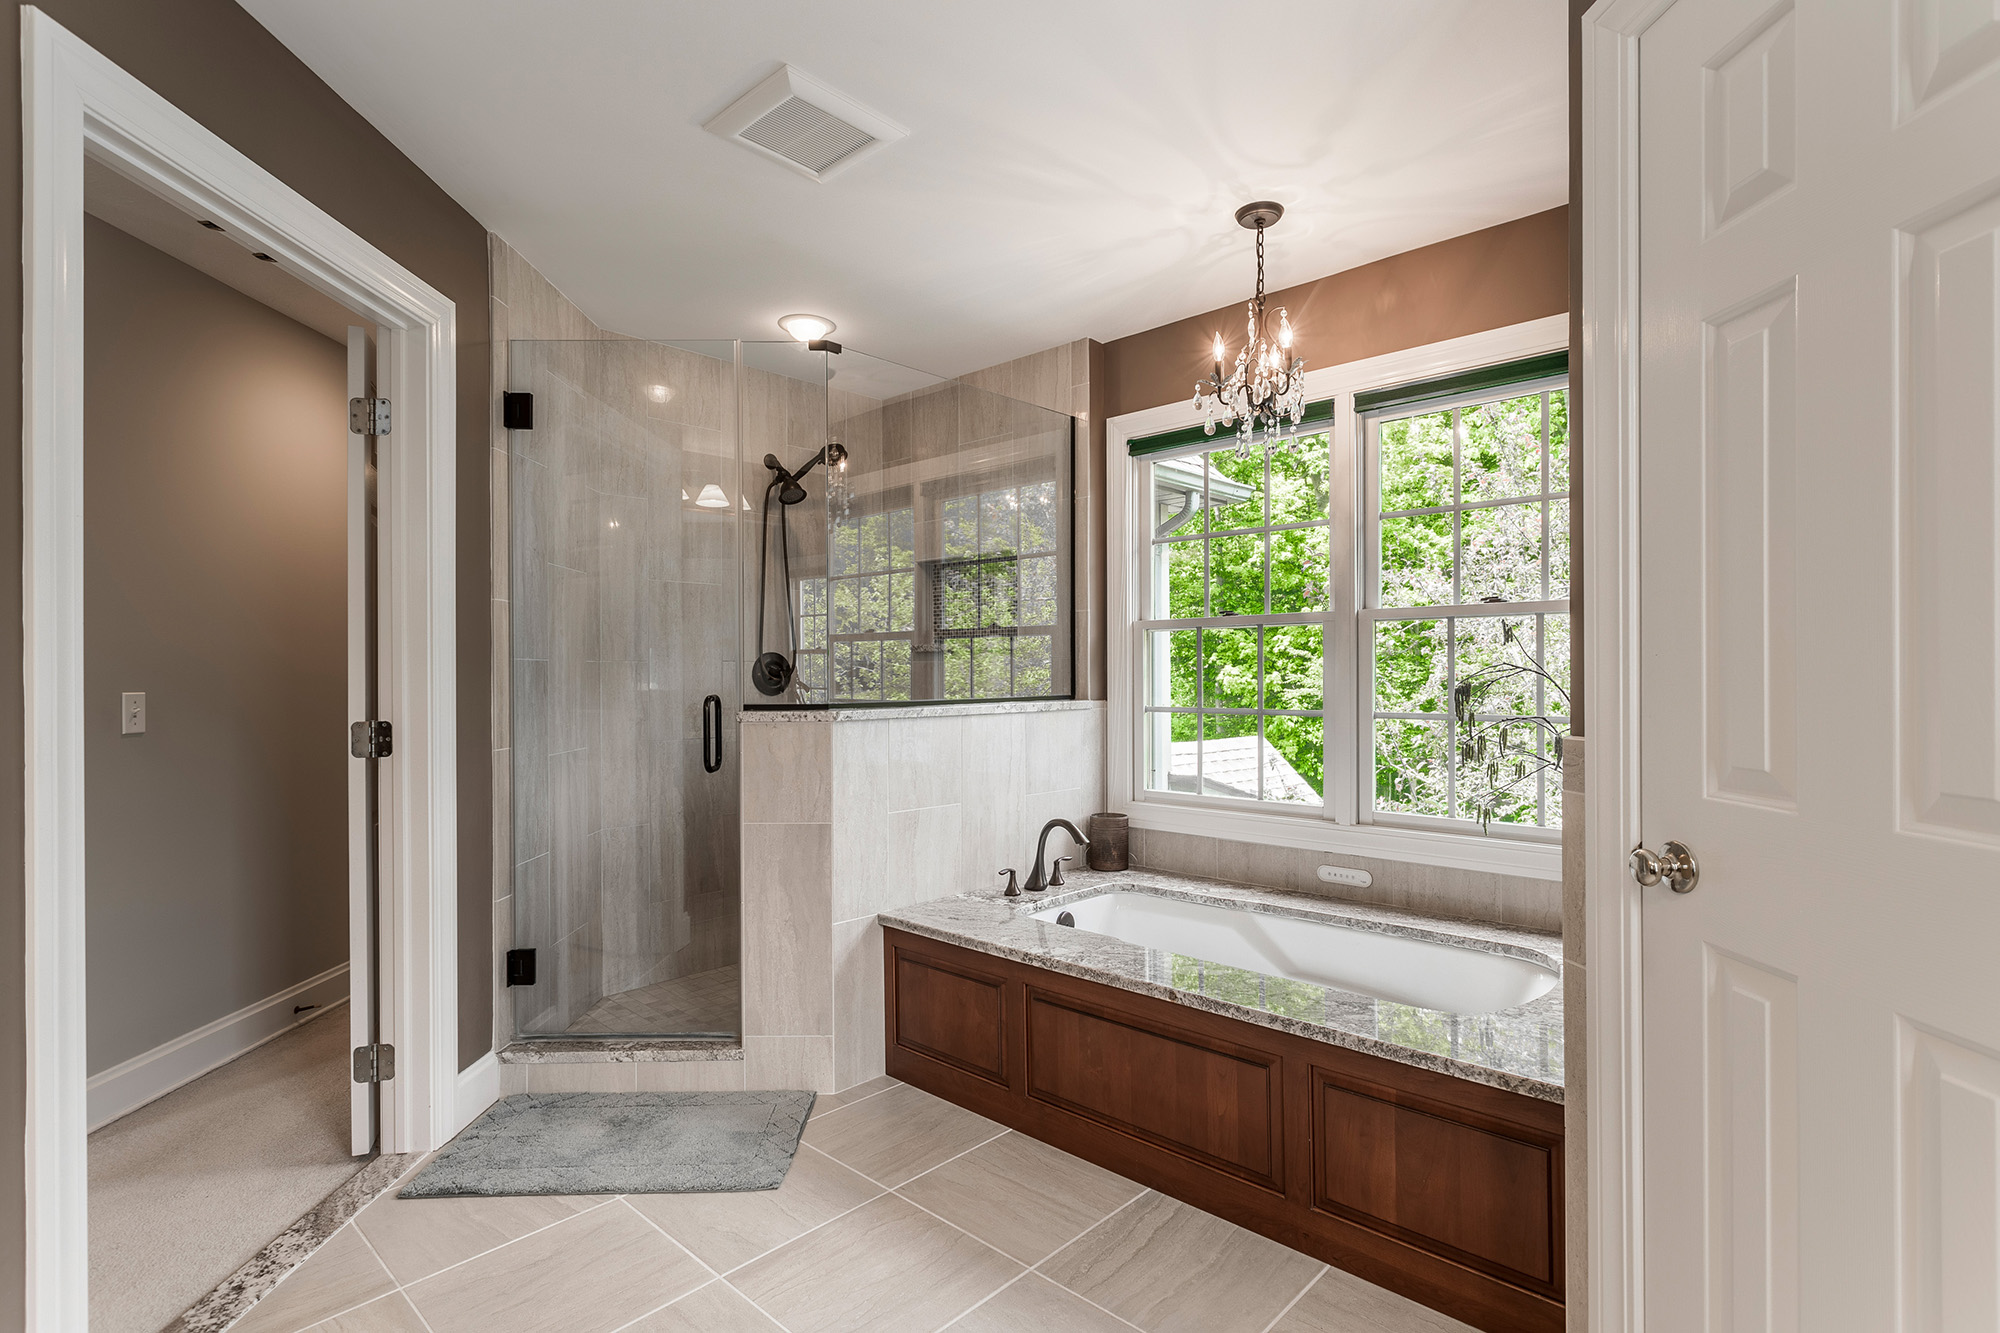 70 Wilding master bathroom